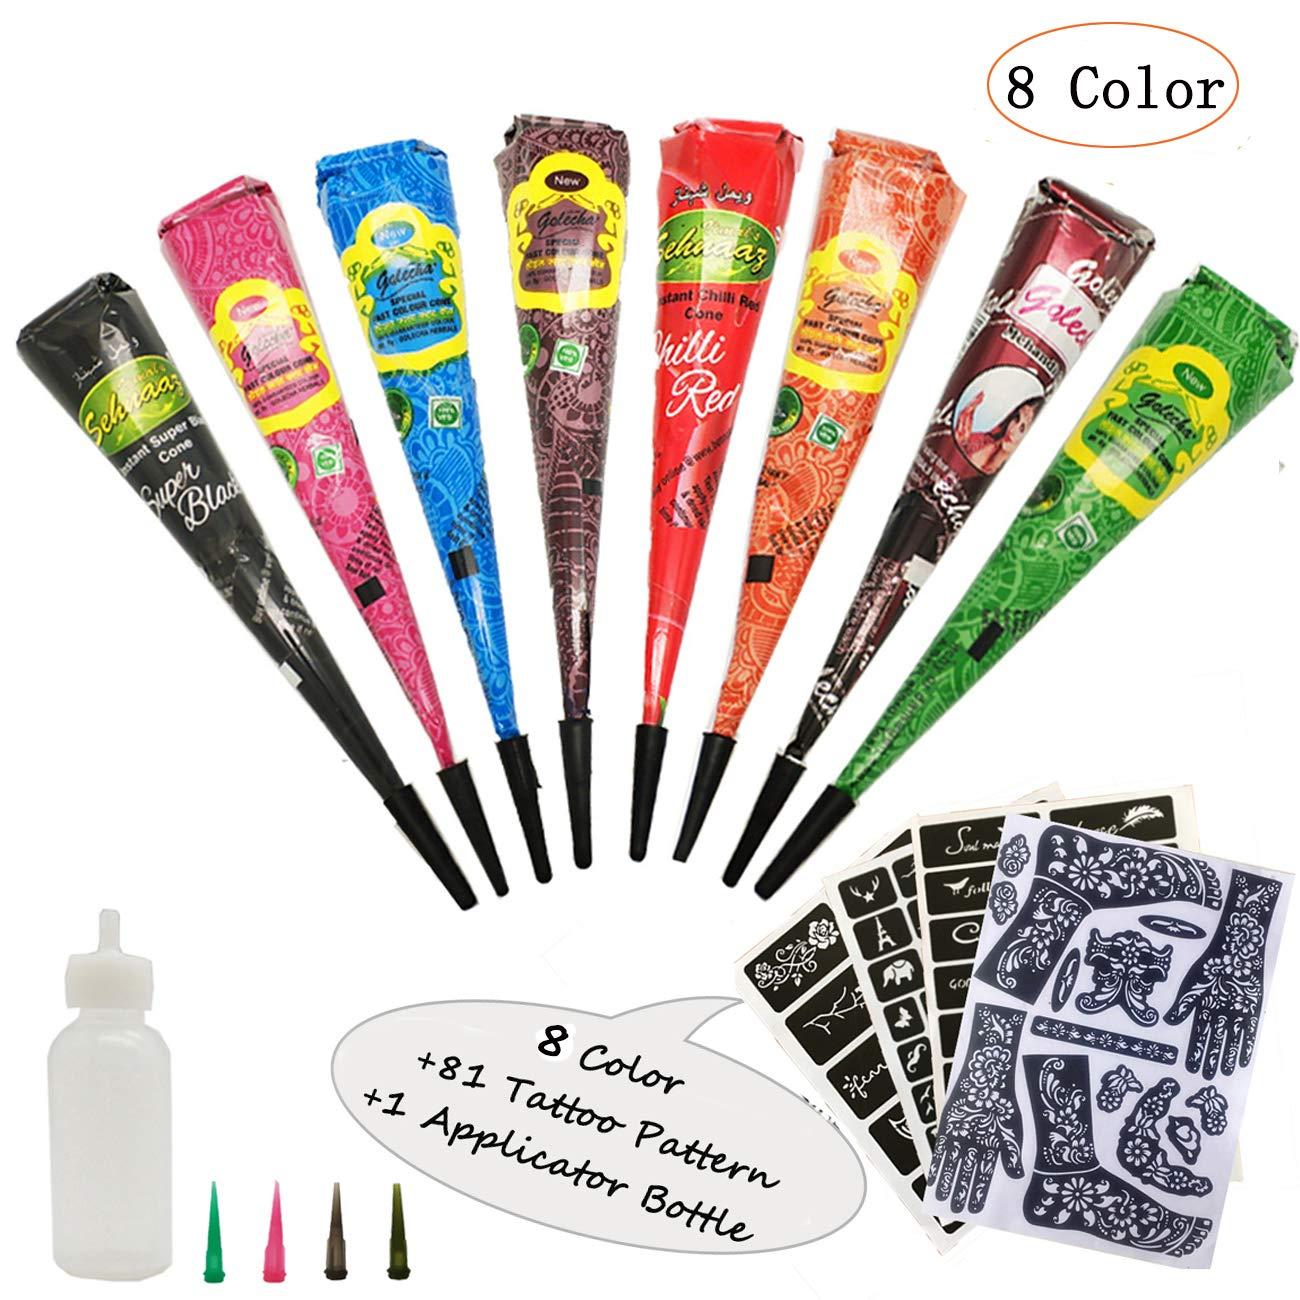 Henna Tattoos Kits- 8 Color Temporary Tattoo India Henna Kit Tattoo Paste Cone Body Art Painting Drawing with 81 pcs Tattoo Templates, 1 x Applicator Bottle and 4 x Plastic Nozzle